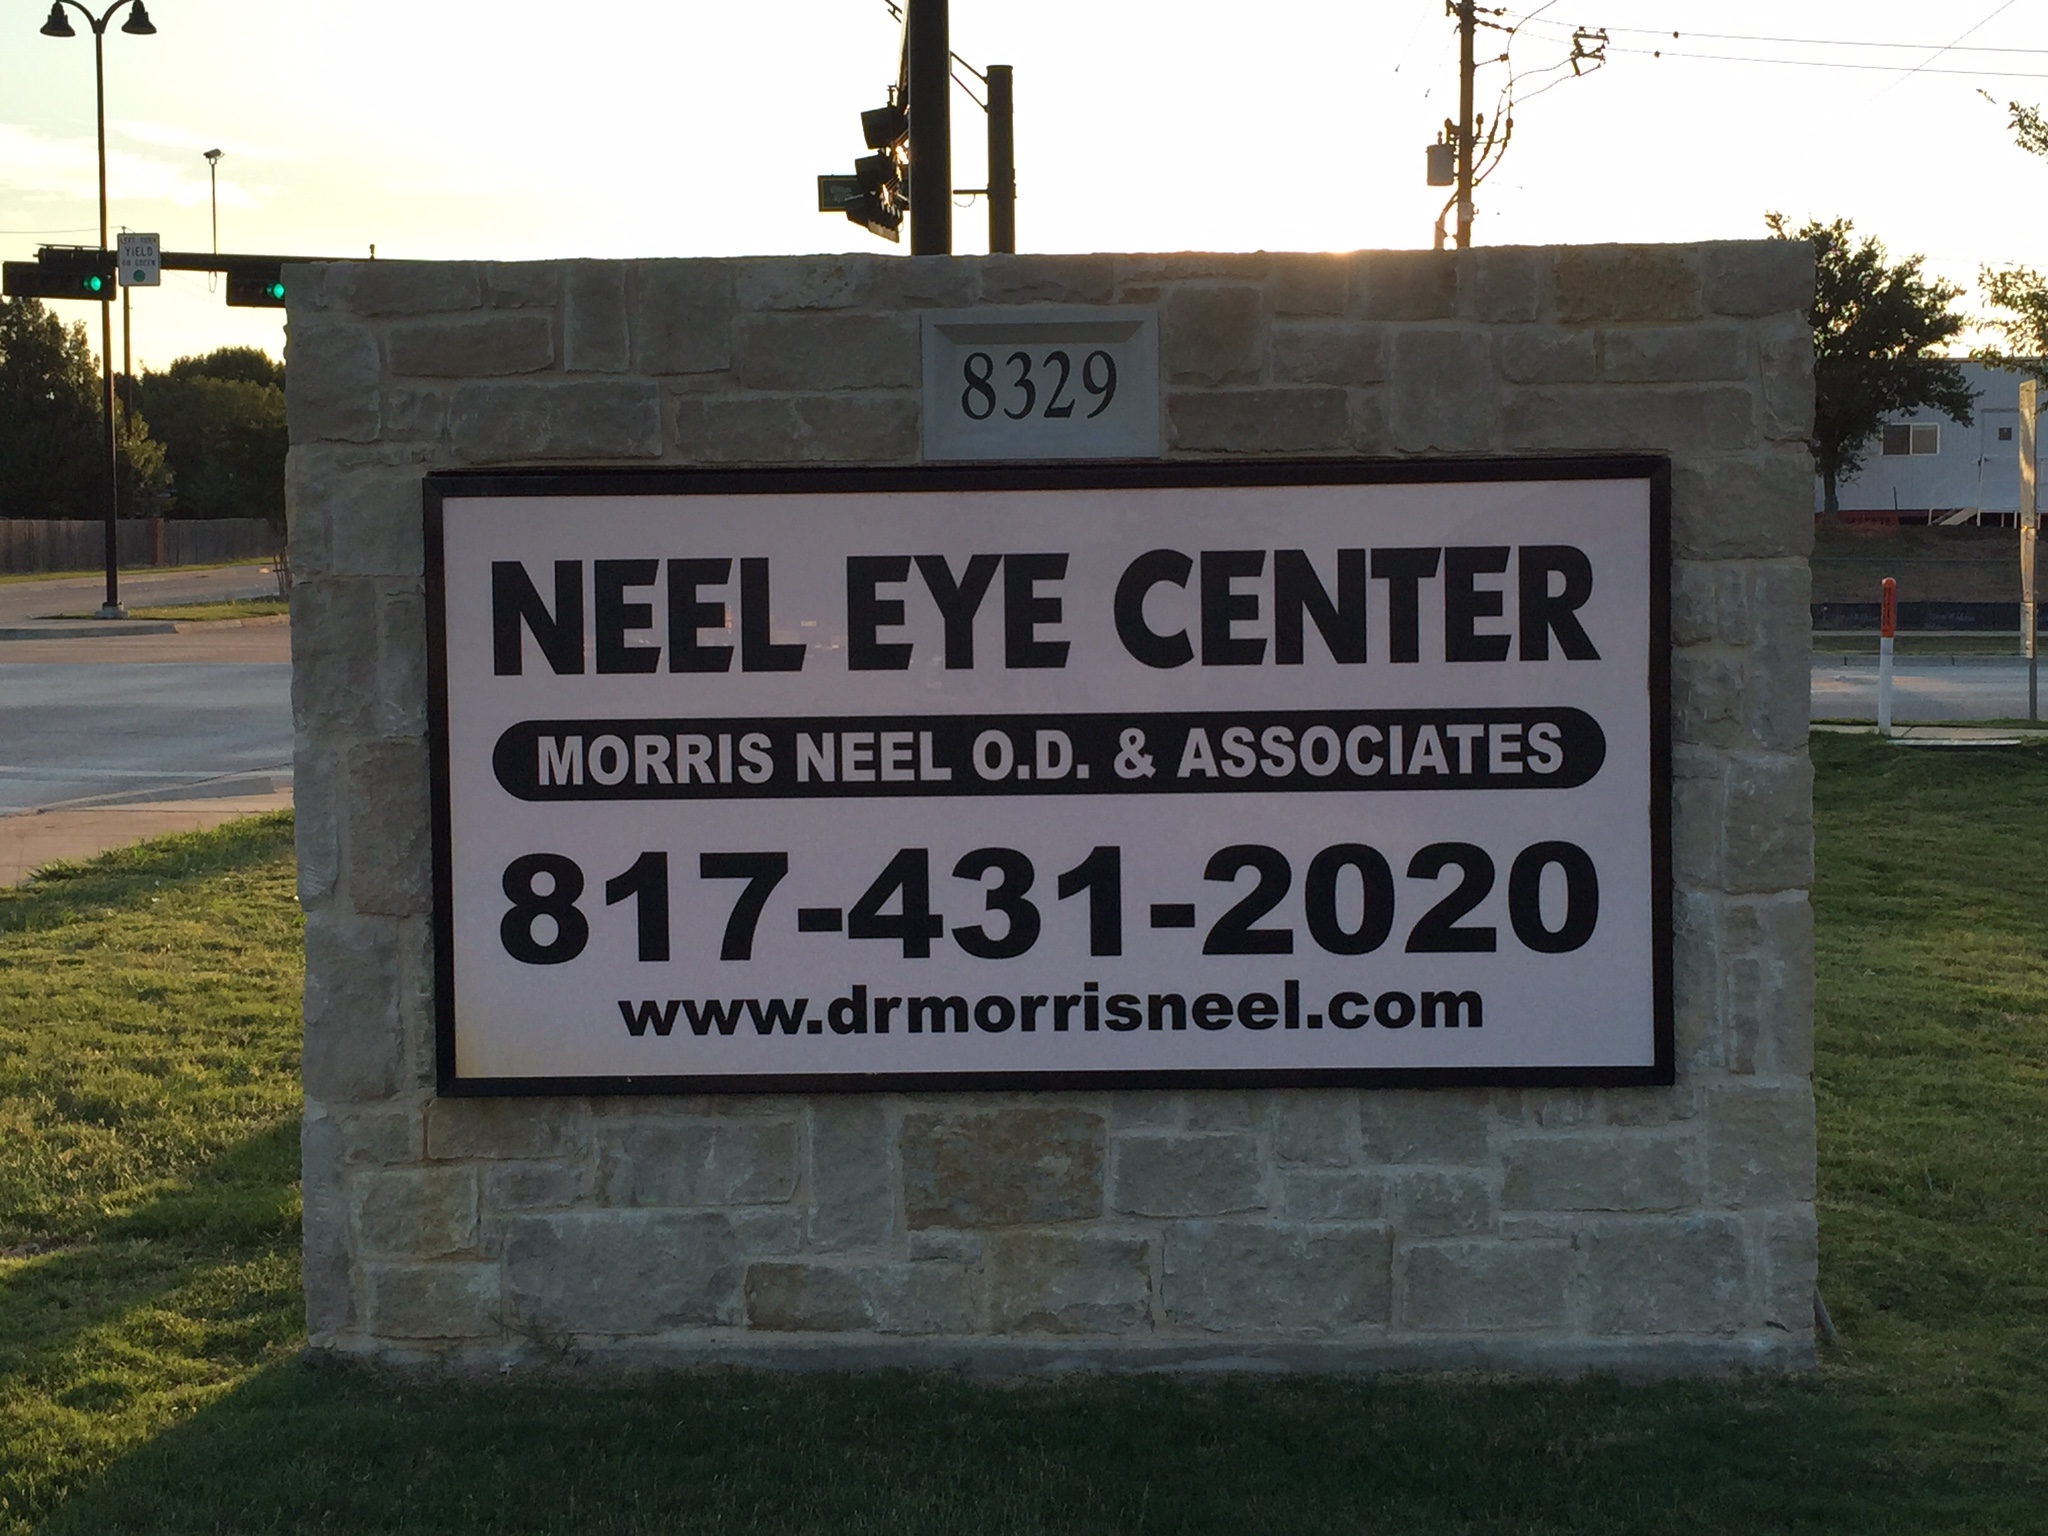 Neel-Eye-Center-sign